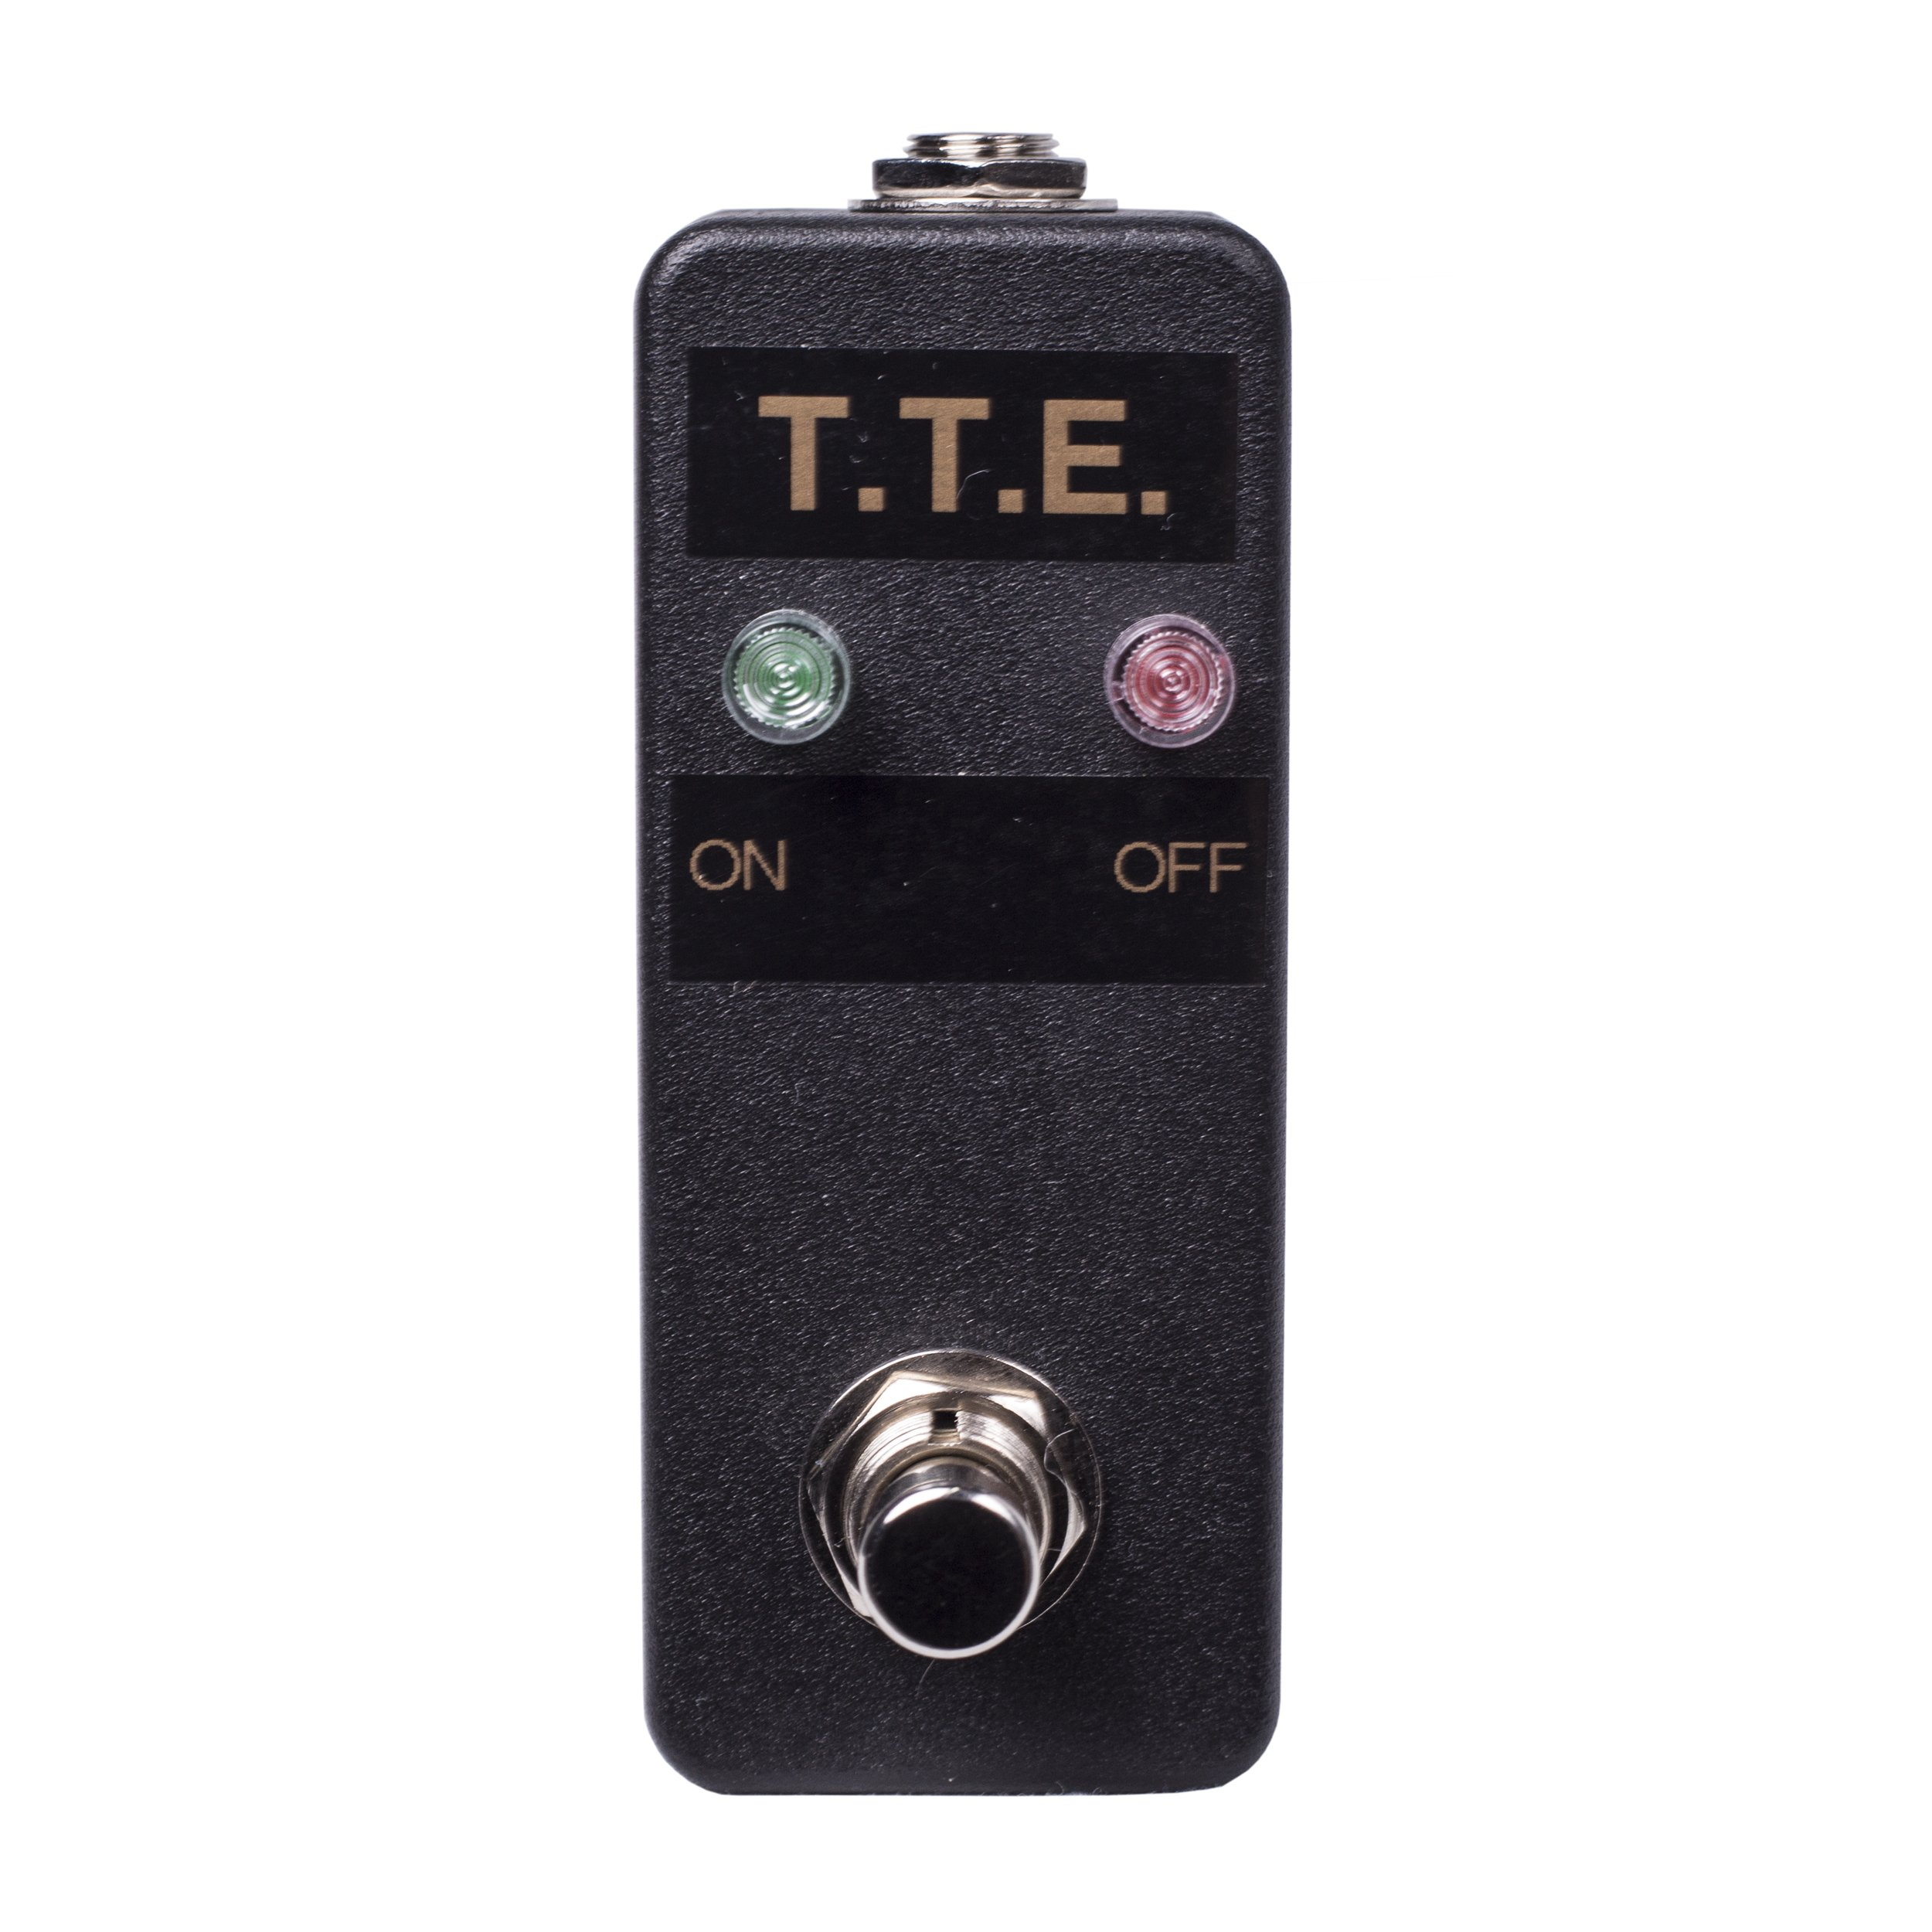 Fulltone Custom Shop Echo Cancel Footswitch For TTE and SSTE by Fulltone Custom Shop